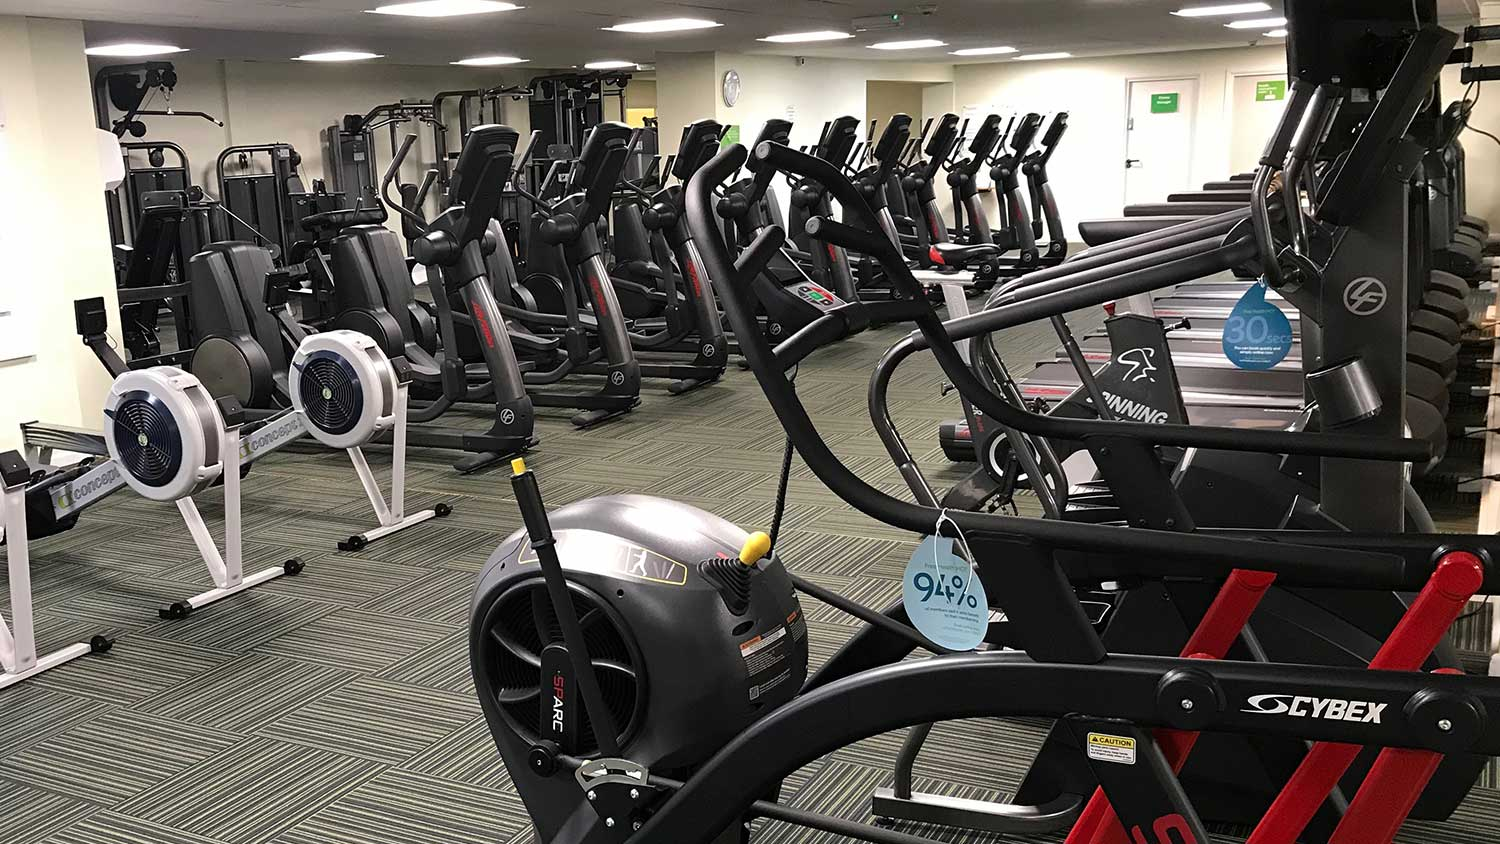 Portsmouth Fitness & Wellbeing Gym - Swimming pool